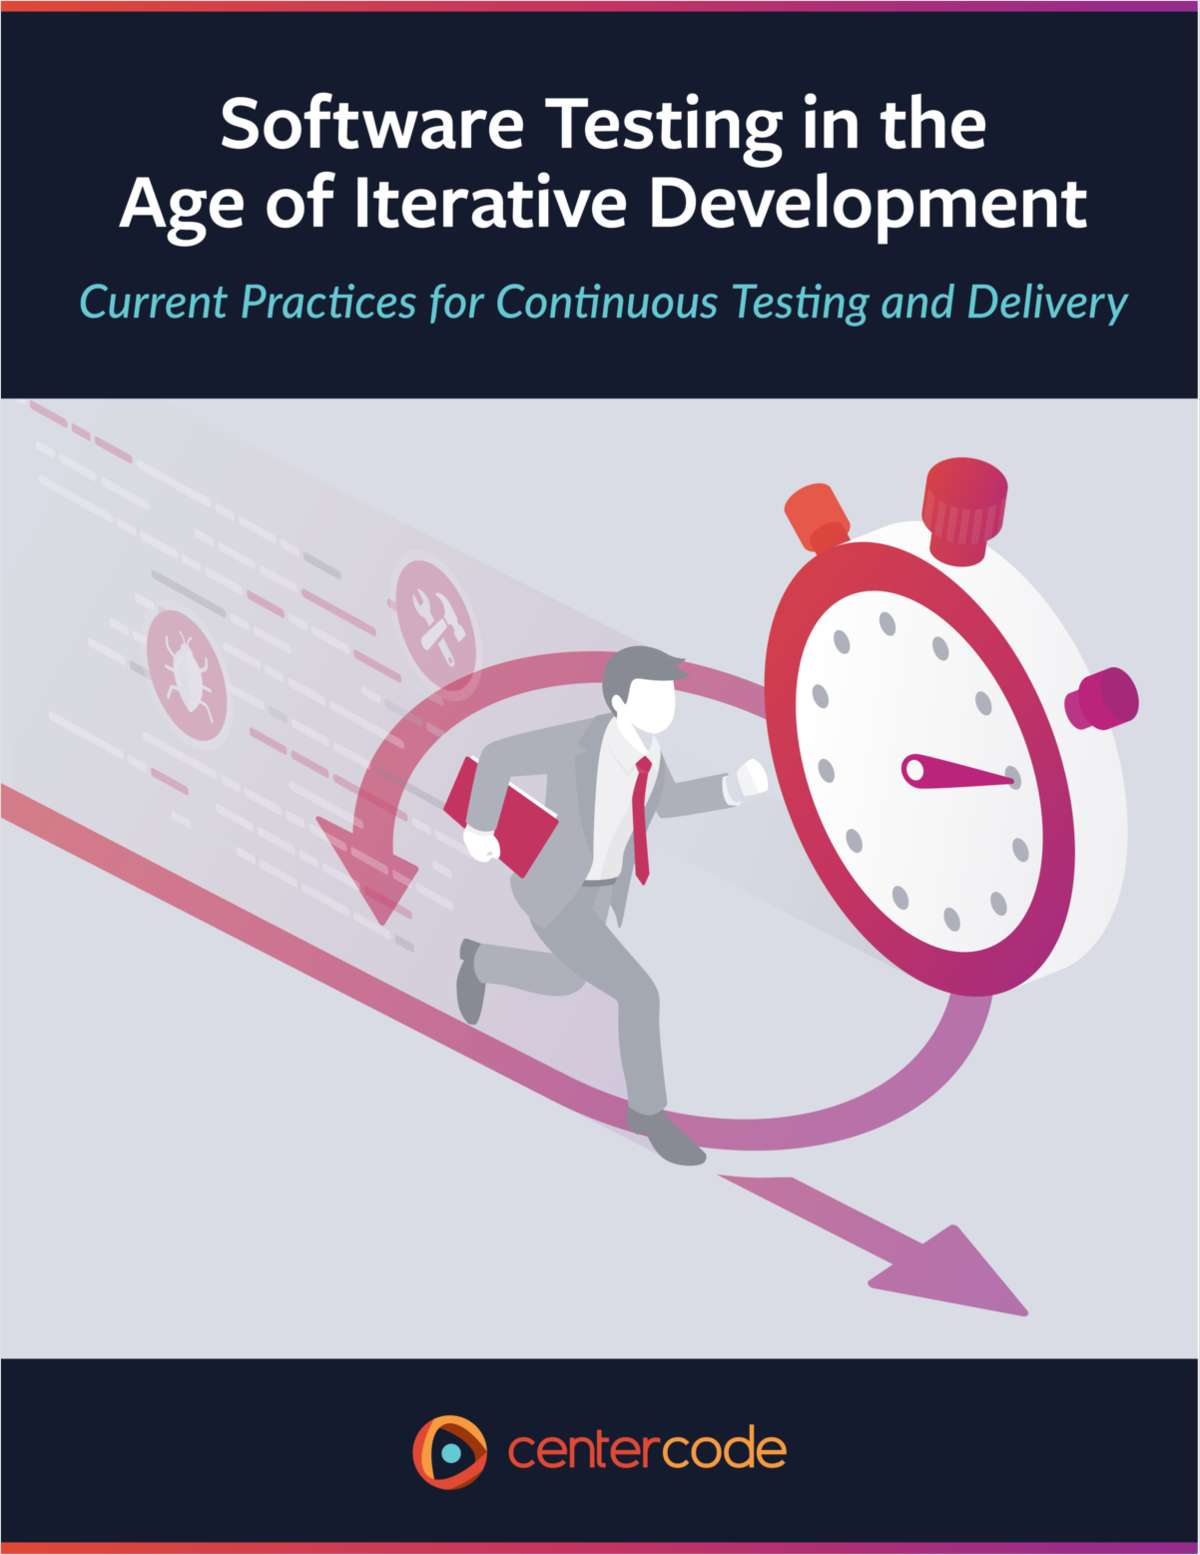 Software Testing in the Age of Iterative Development